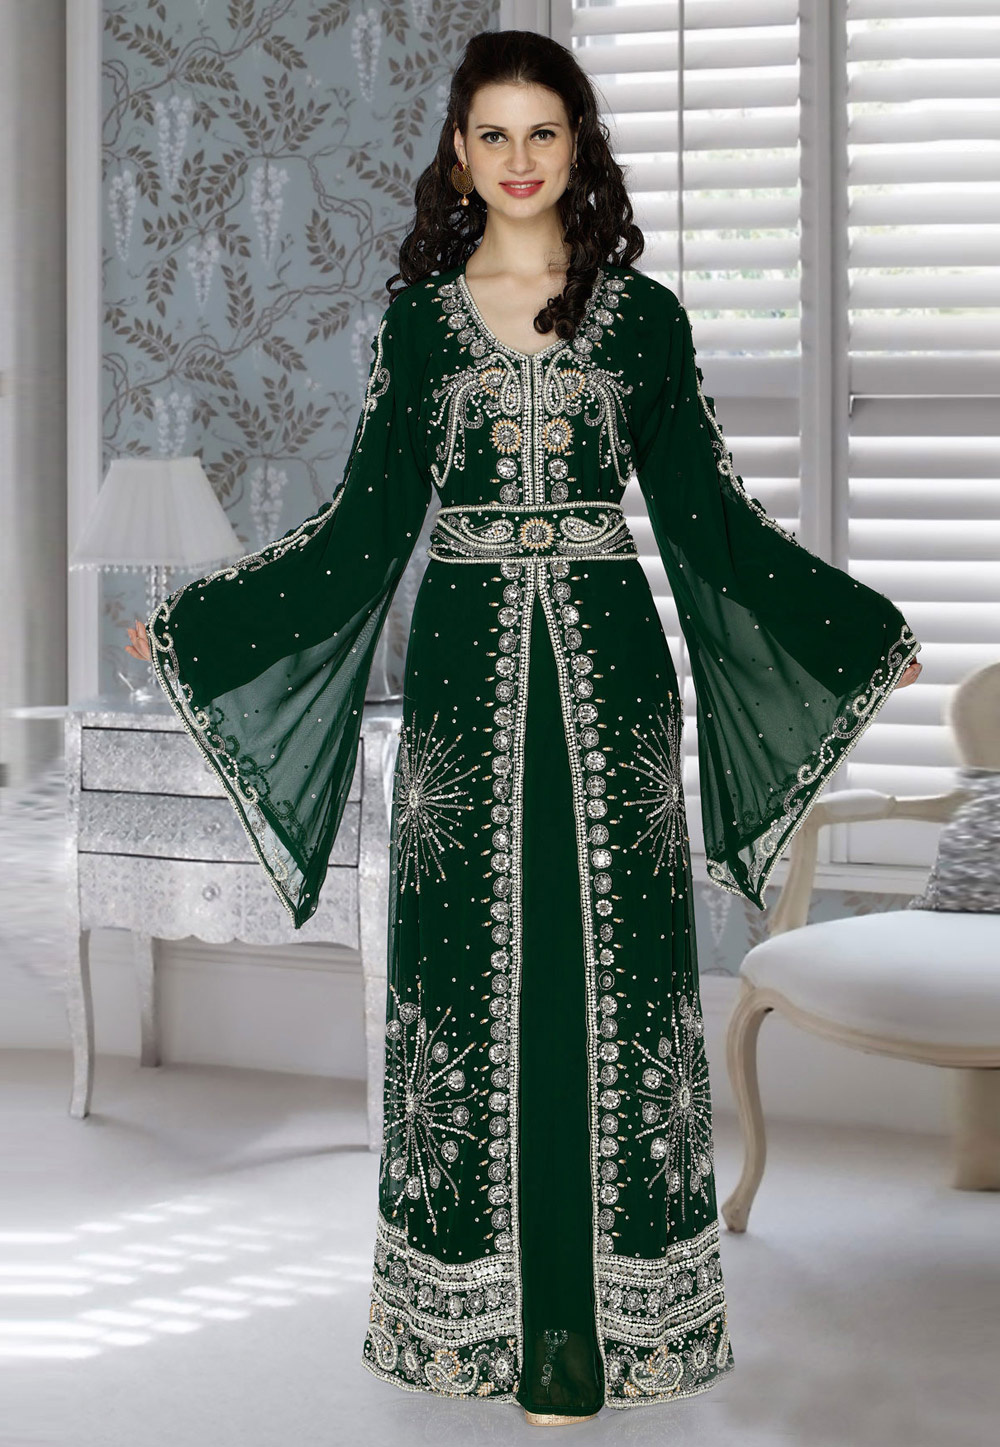 Green Faux Georgette Embroidered Readymade Kaftan 194778